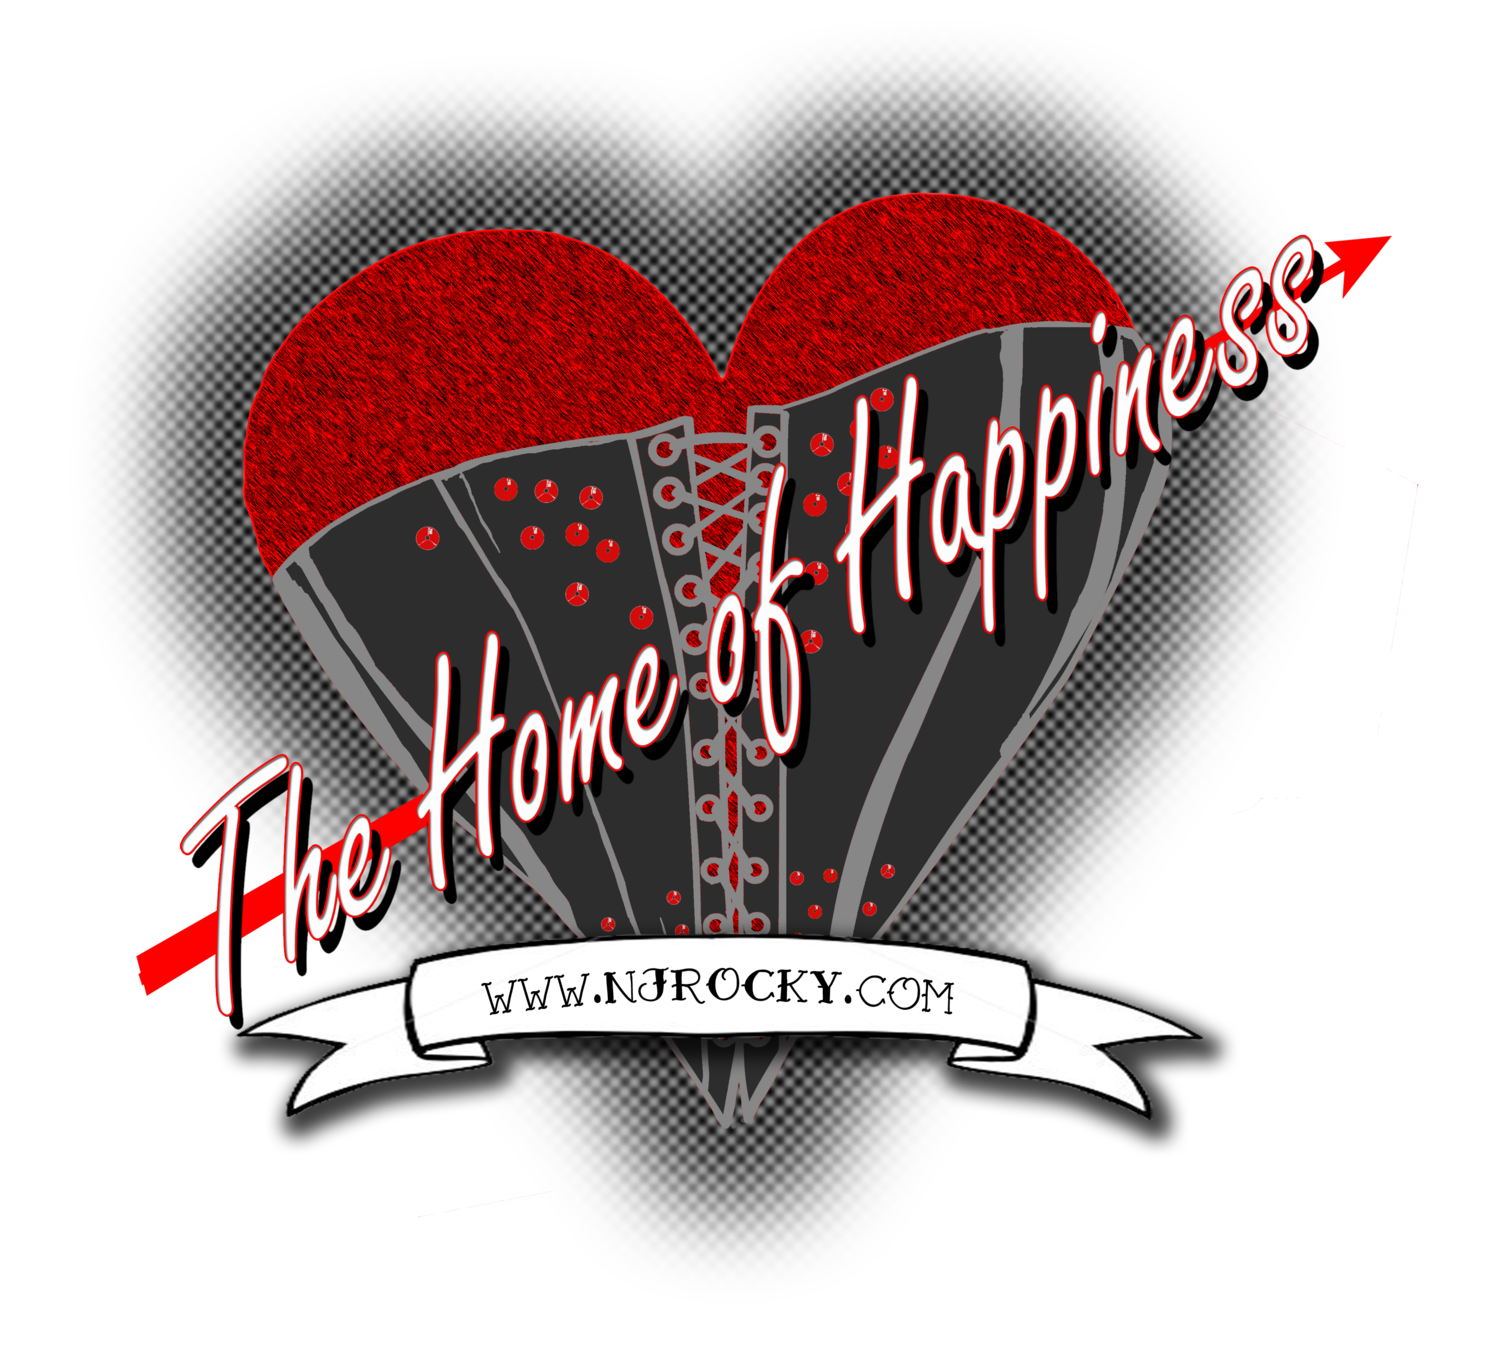 The Home of Happiness